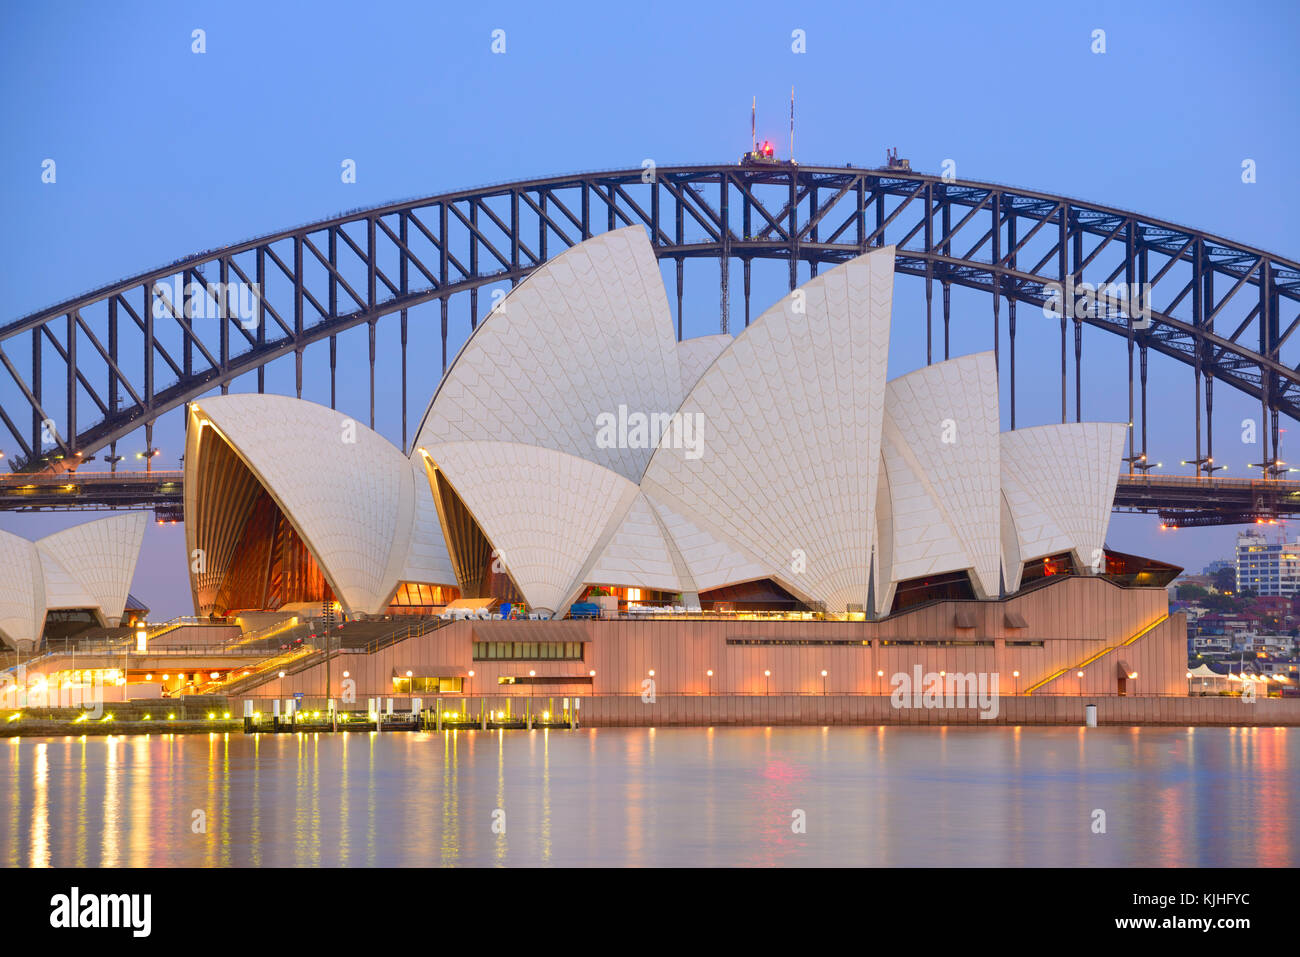 Sydney Opera House And Harbour Bridge At Dusk, The Royal Botanic Garden,  Sydney, NSW, Australia